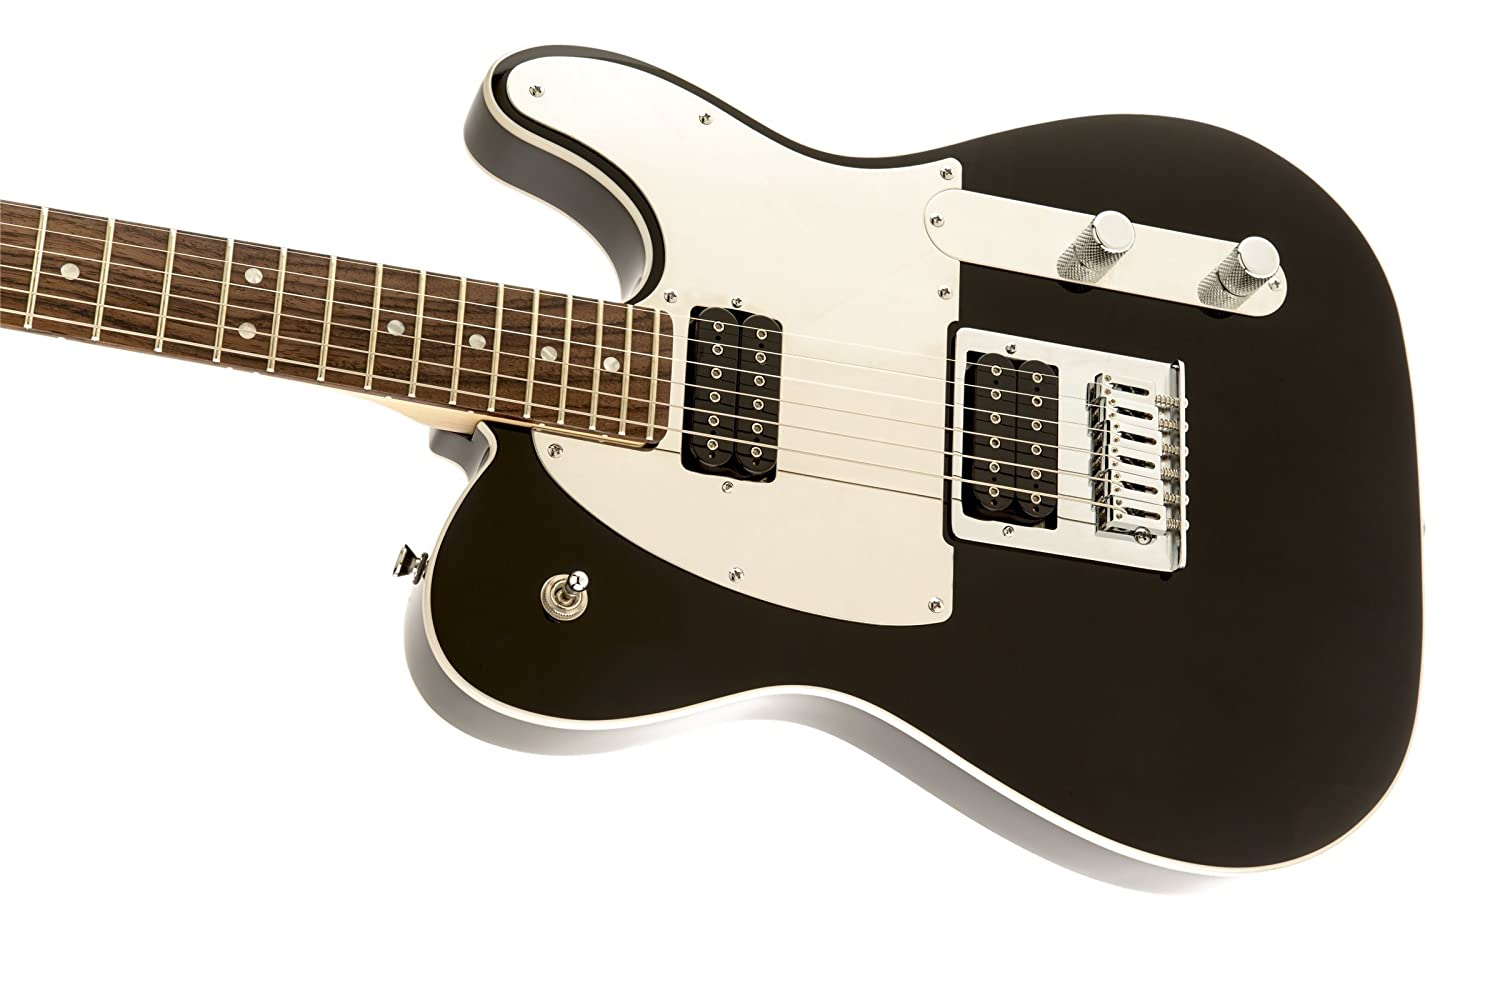 Squier by Fender J5 Signature Series Telecaster - Guitarra eléctrica, color negro: Amazon.es: Instrumentos musicales